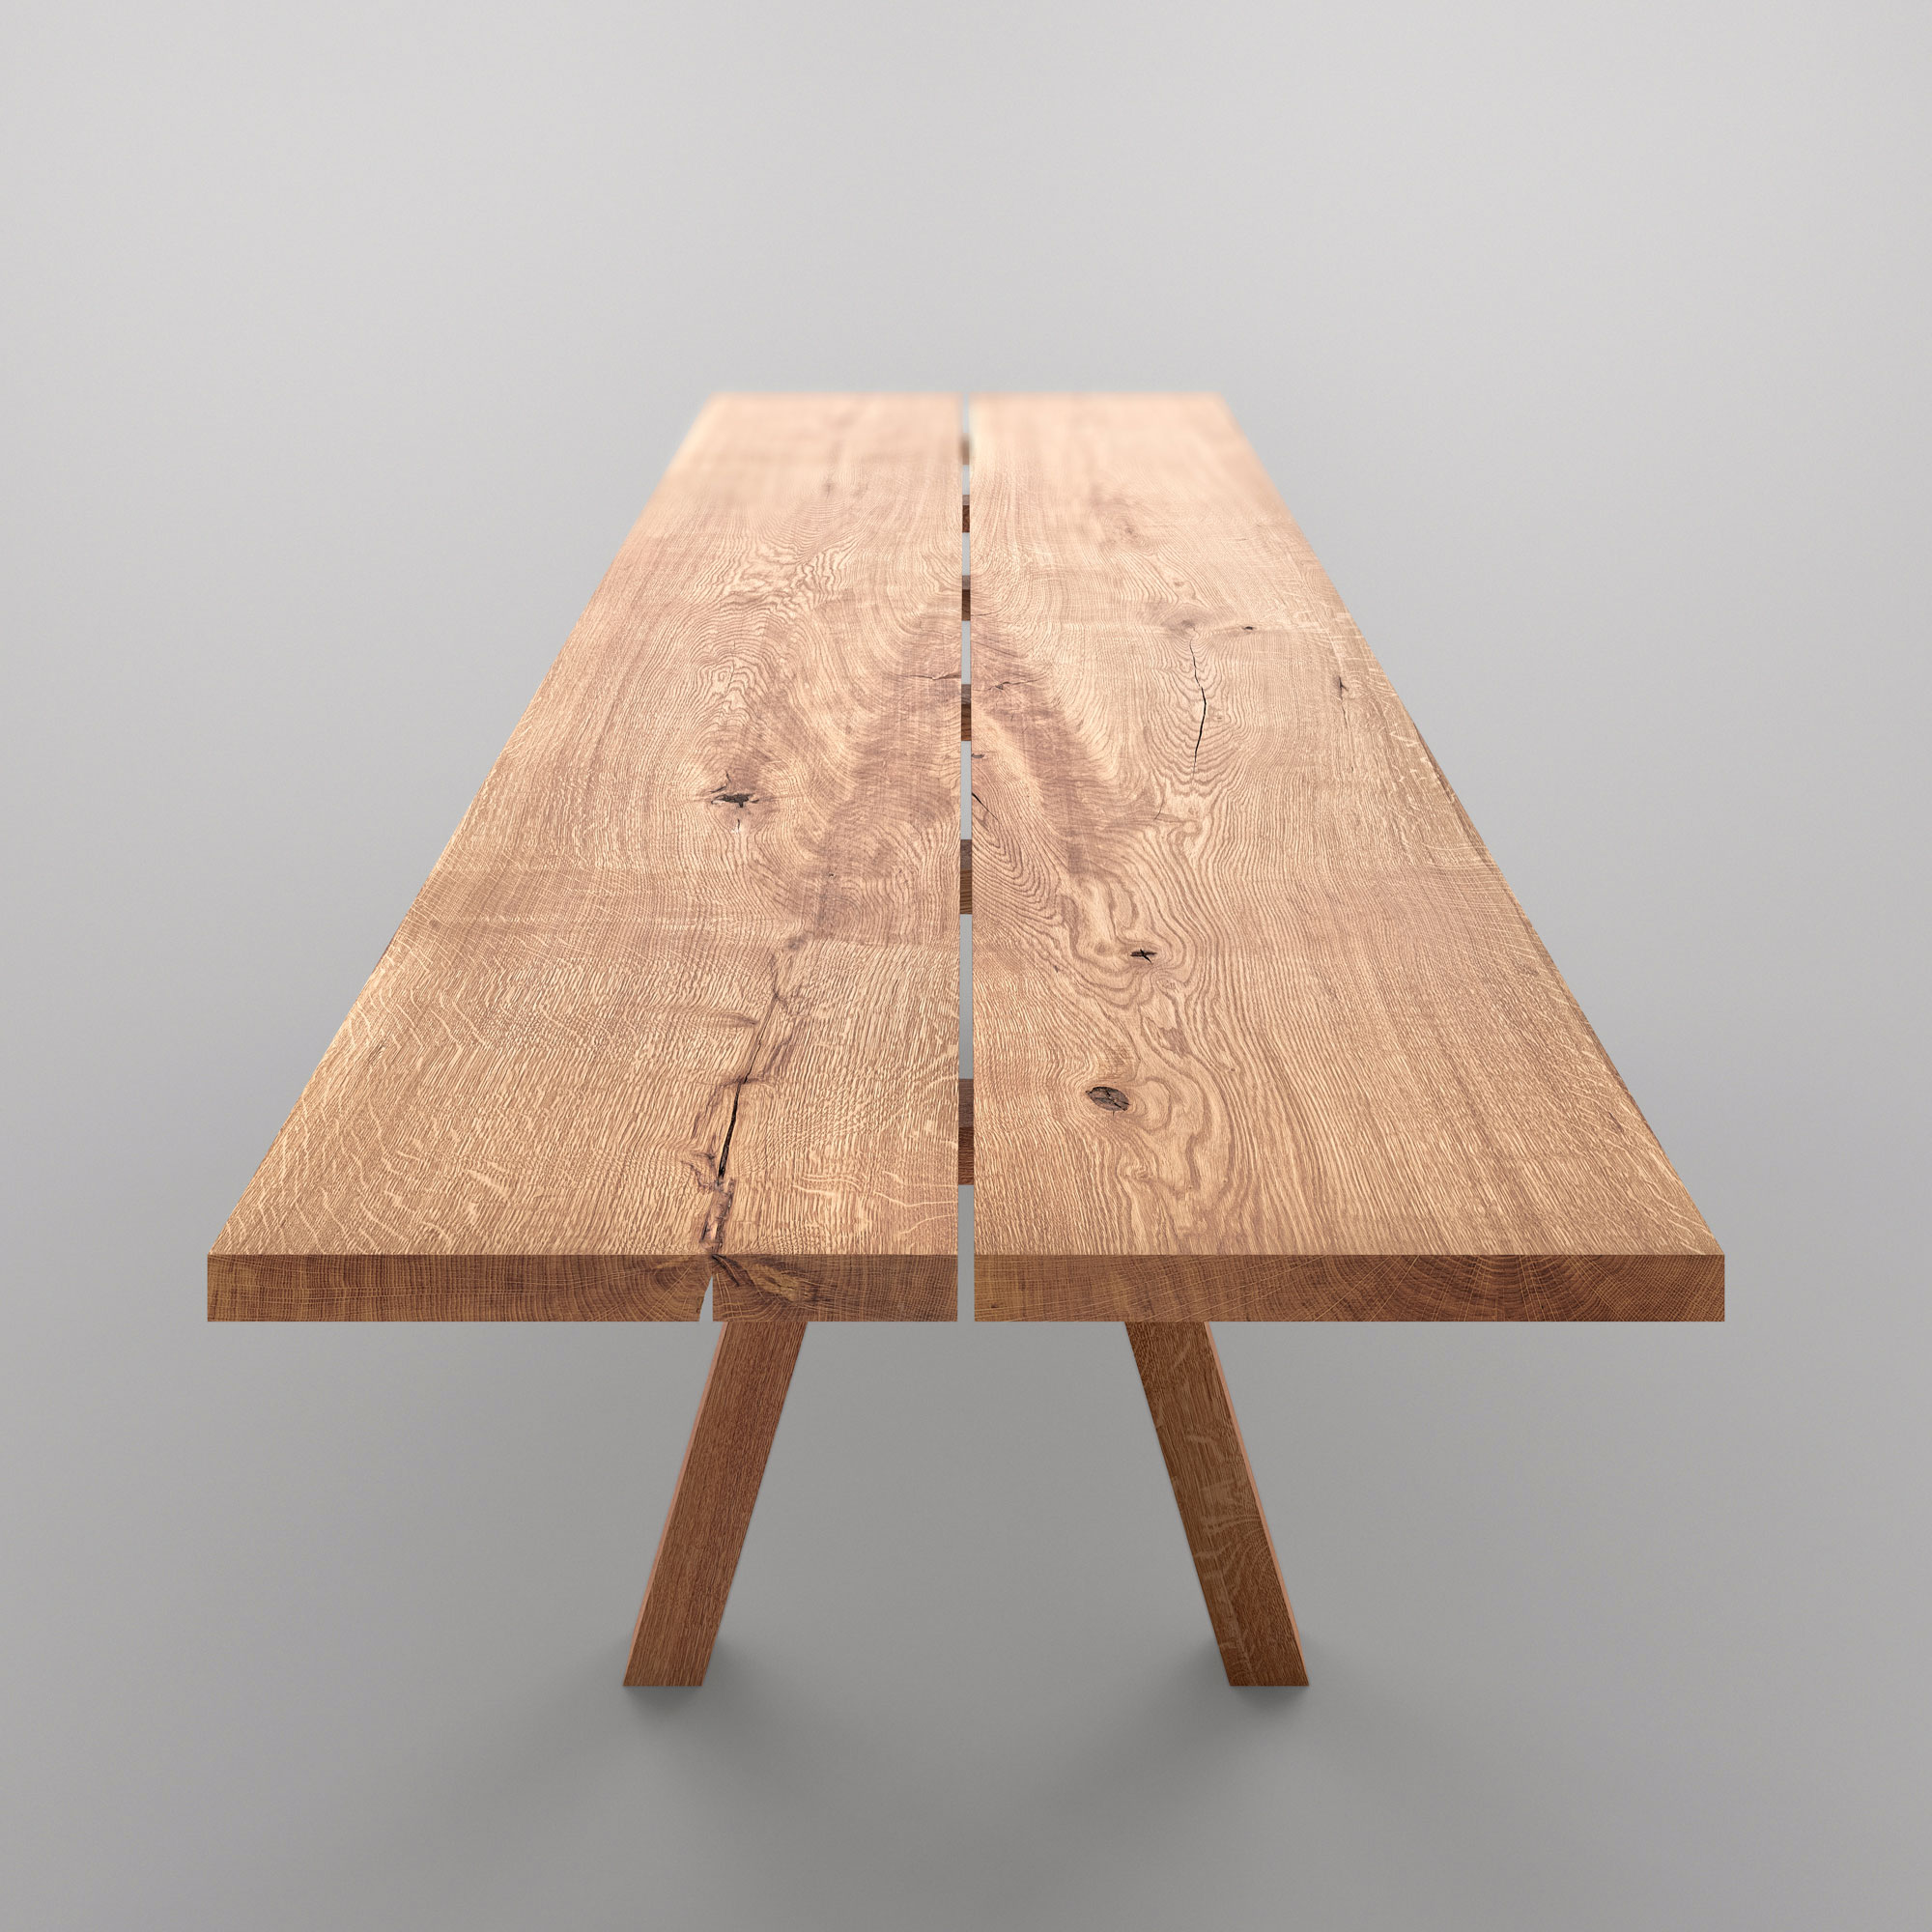 Designer Tree Trunk Table PAPILIO SIMPLE cam4 custom made in solid wood by vitamin design